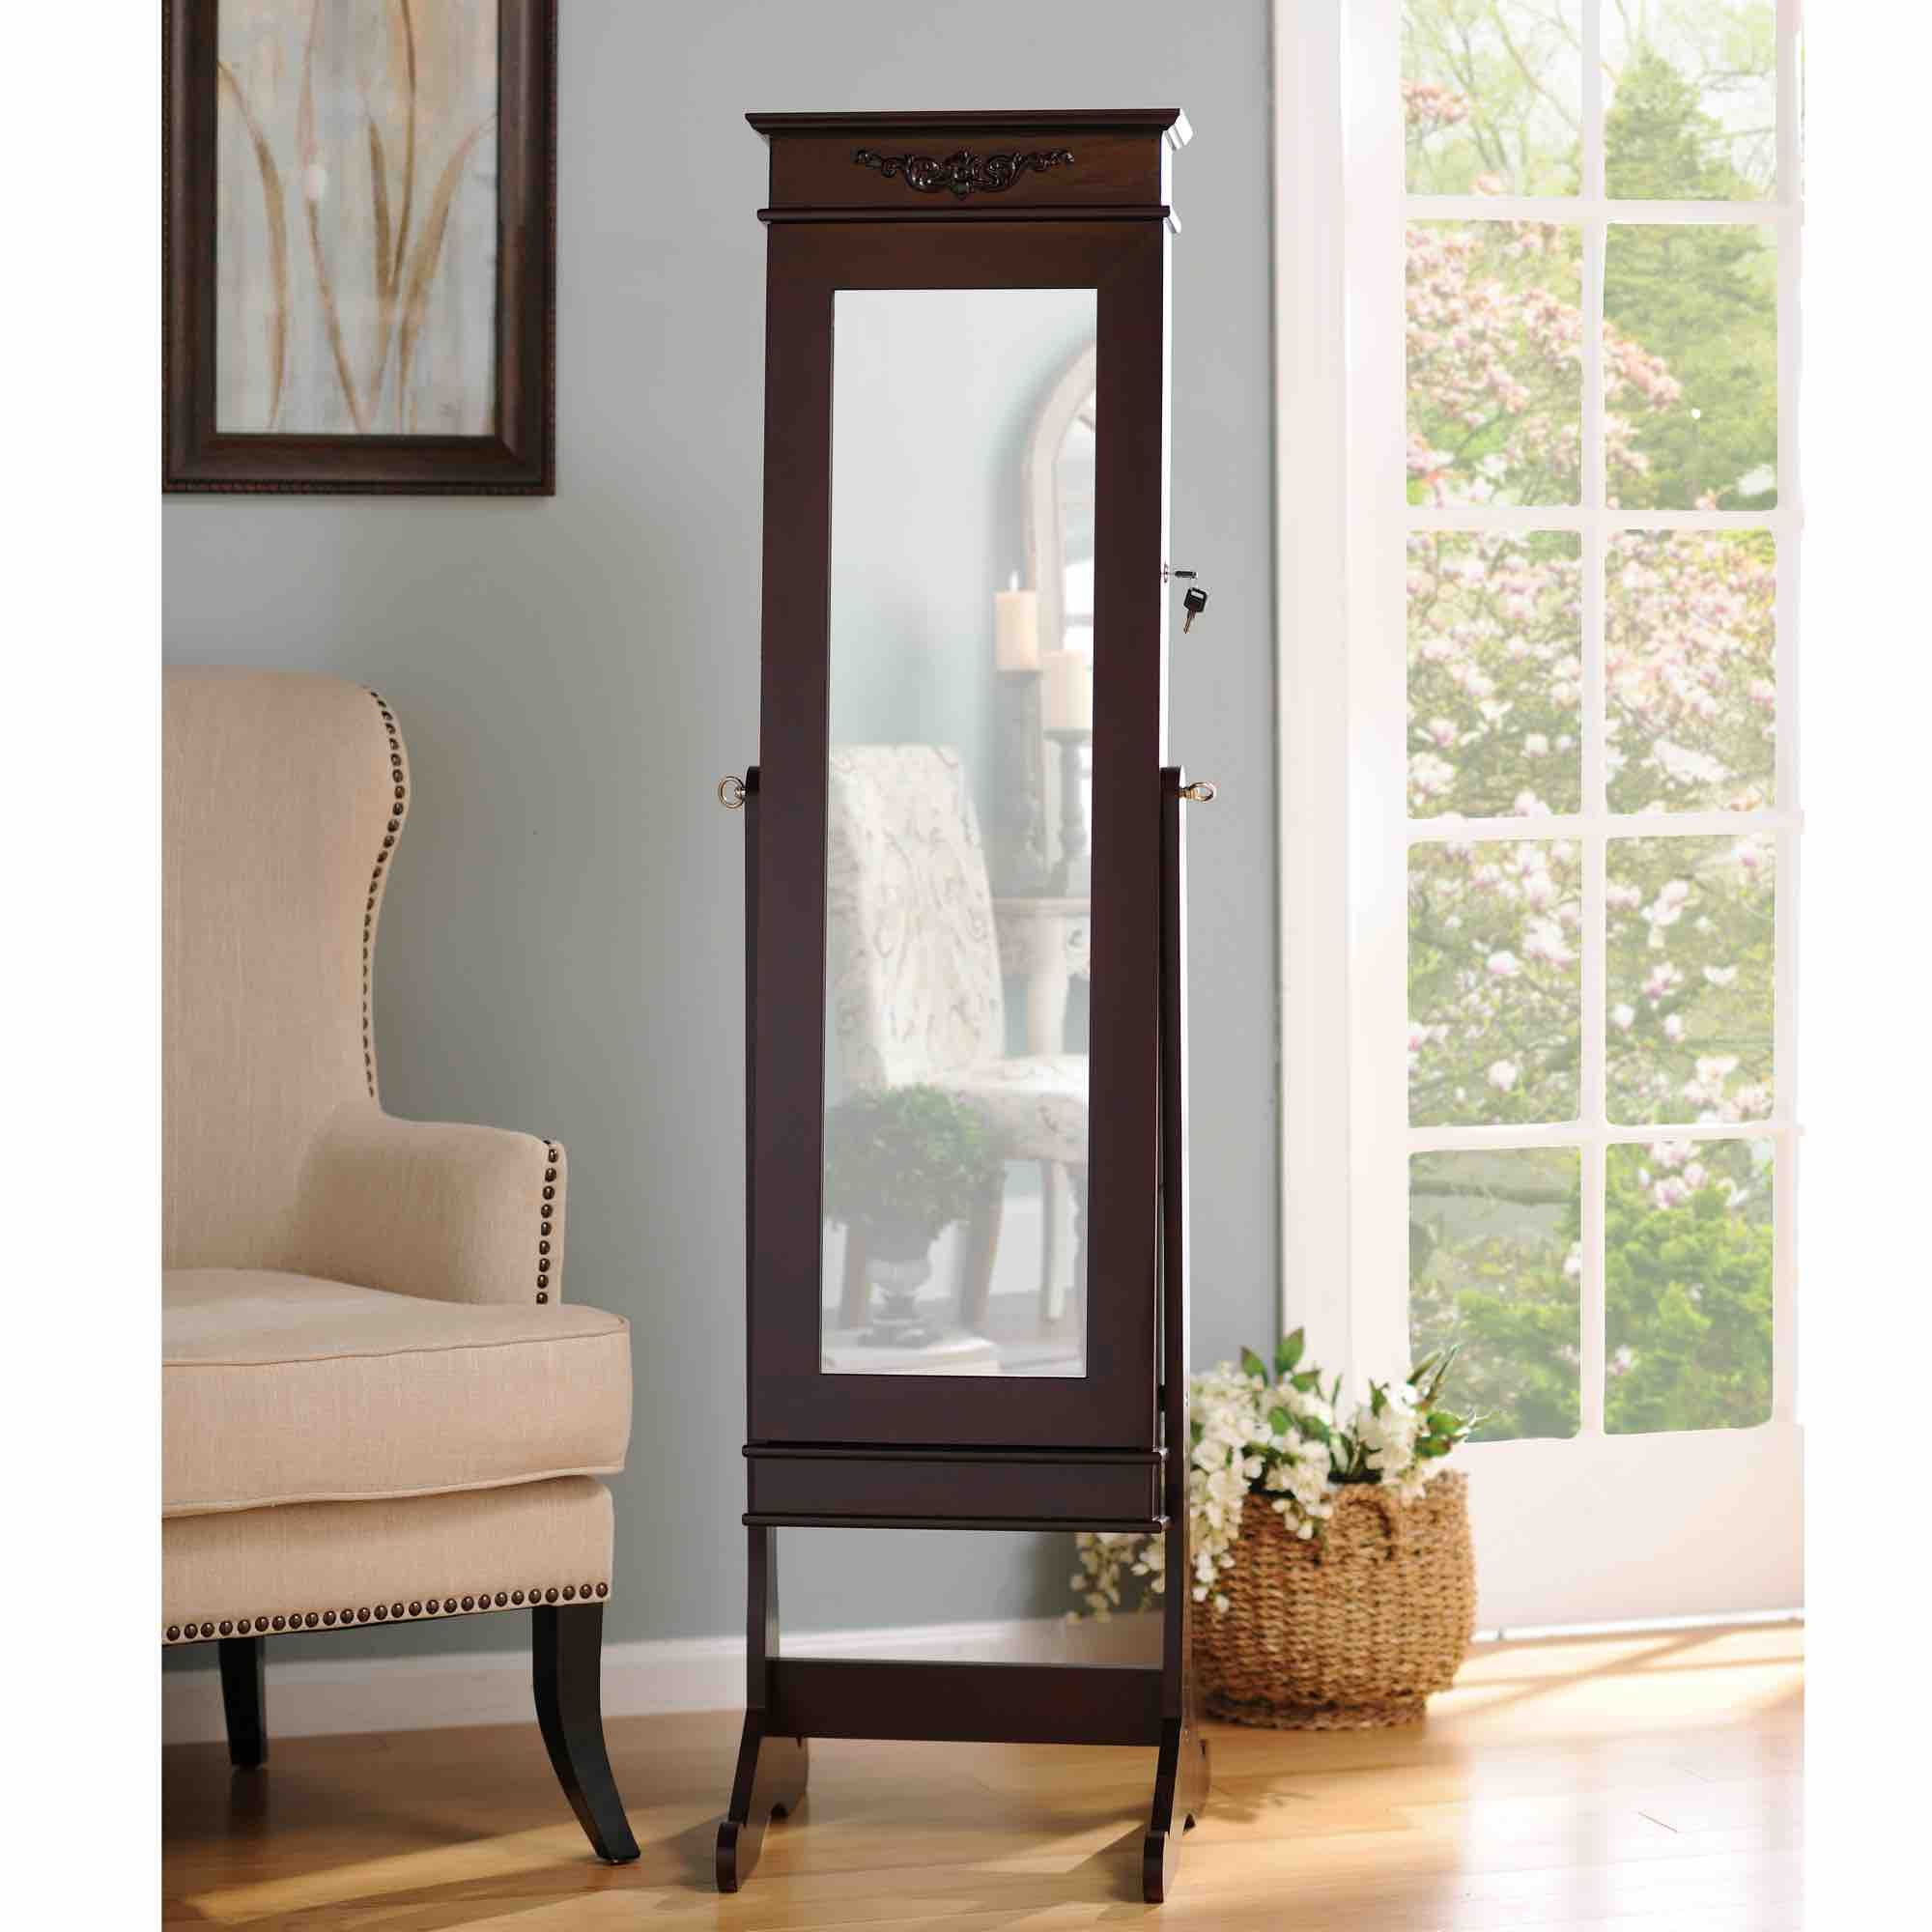 Cherry Cheval LED Jewelry Armoire Mirror | Jewelry armoire ...